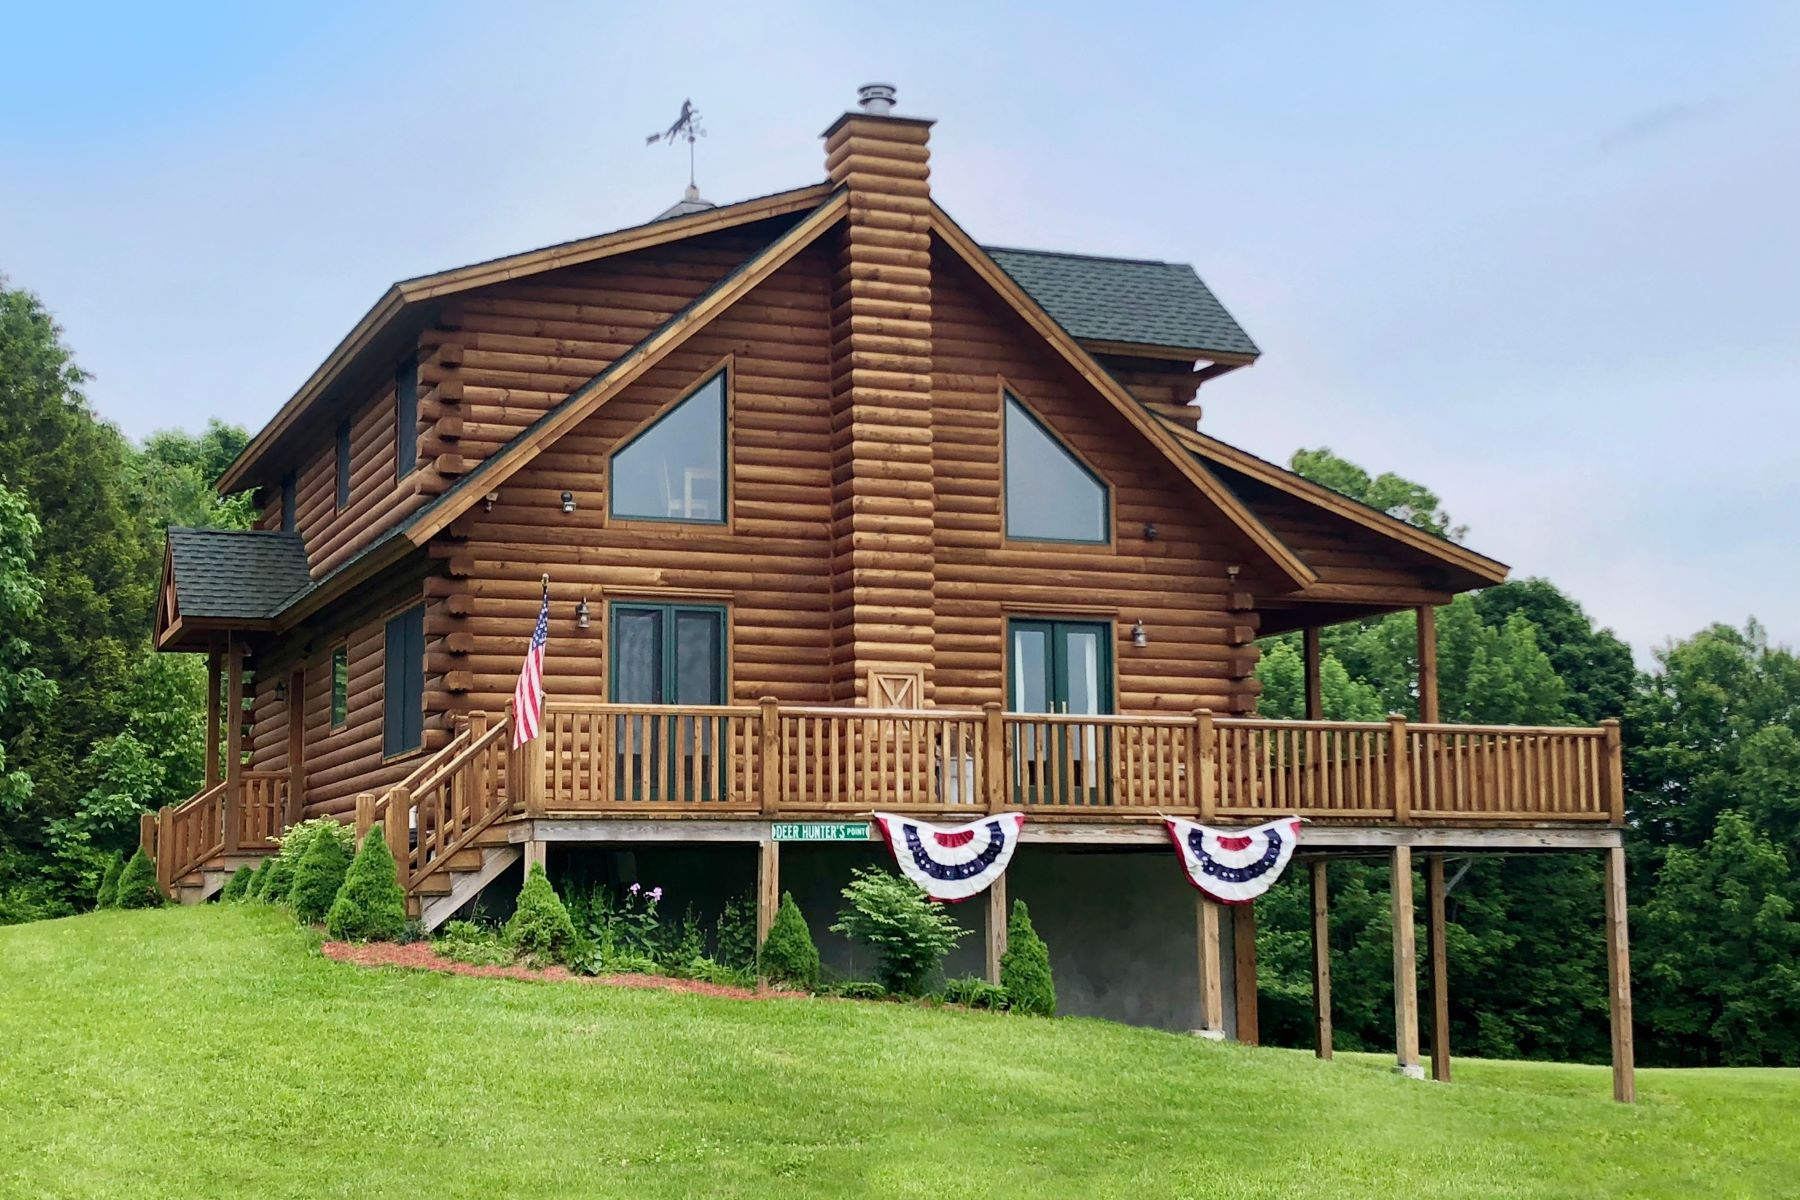 Single Family Homes for Active at 1135 County Road 34, Norwich, NY 13815 1135 County Road 34 Norwich, New York 13815 United States